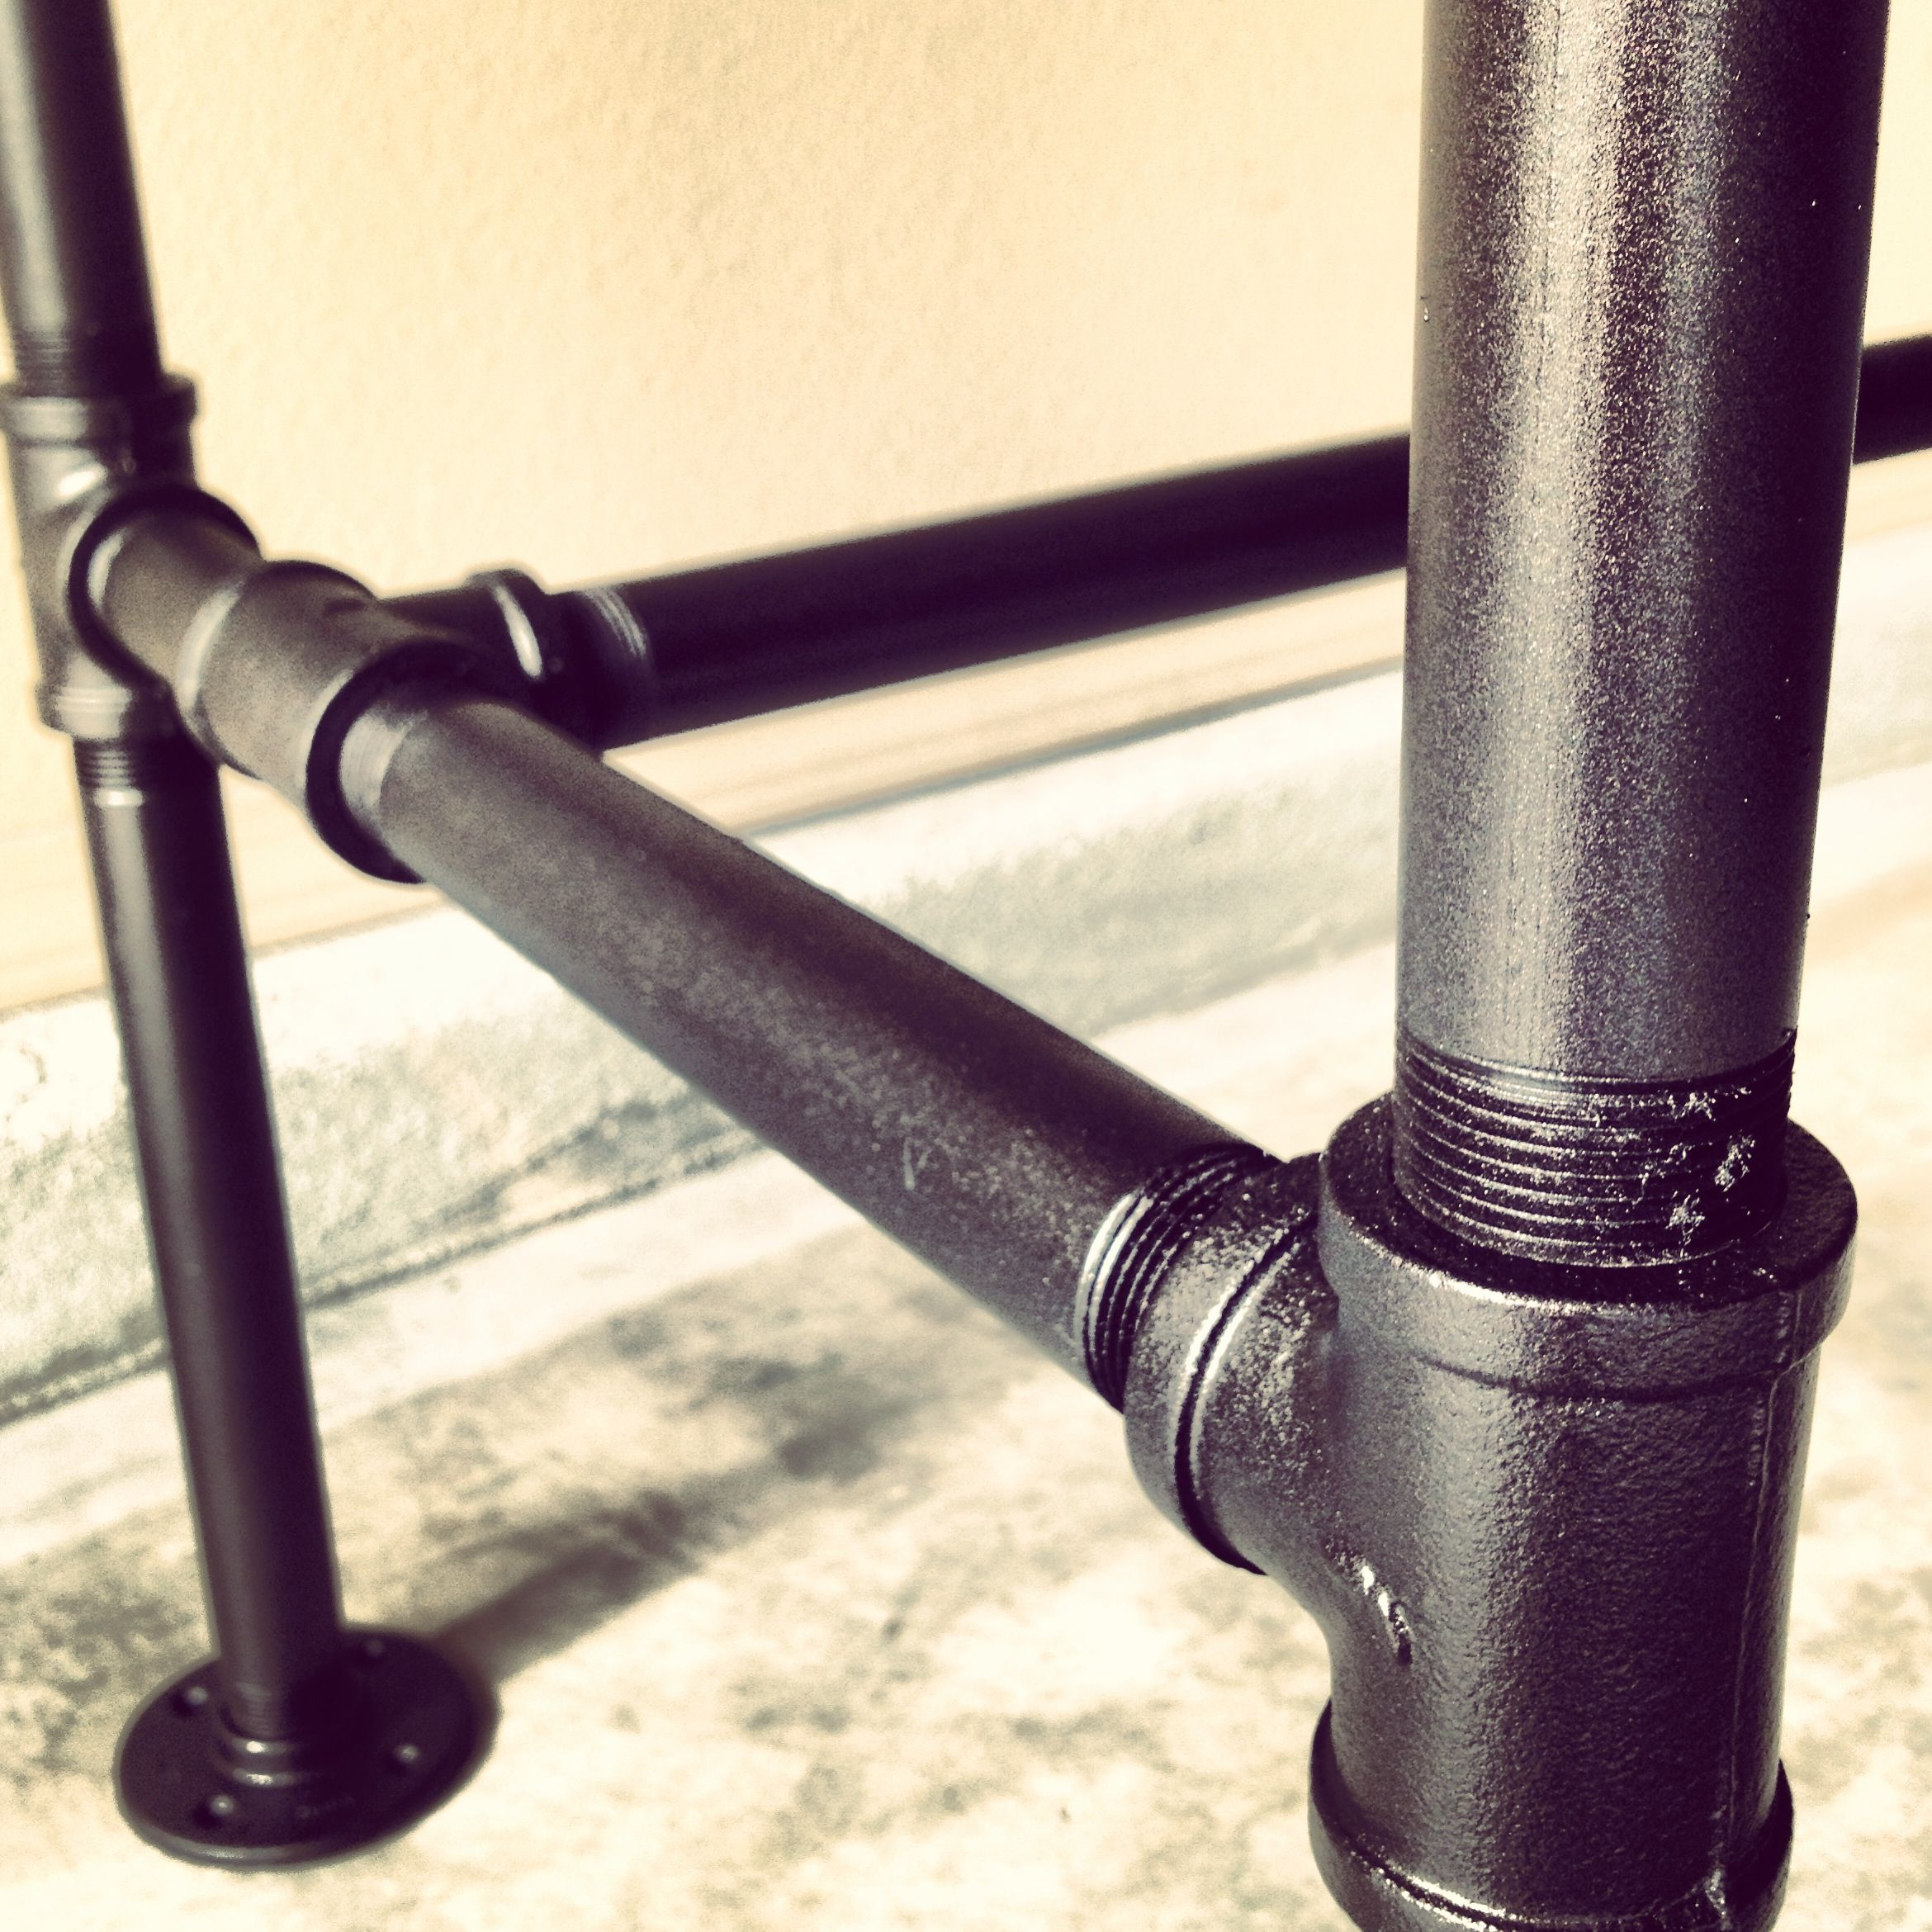 DIY galvanized steel pipe desk frame detail 1 pipe with